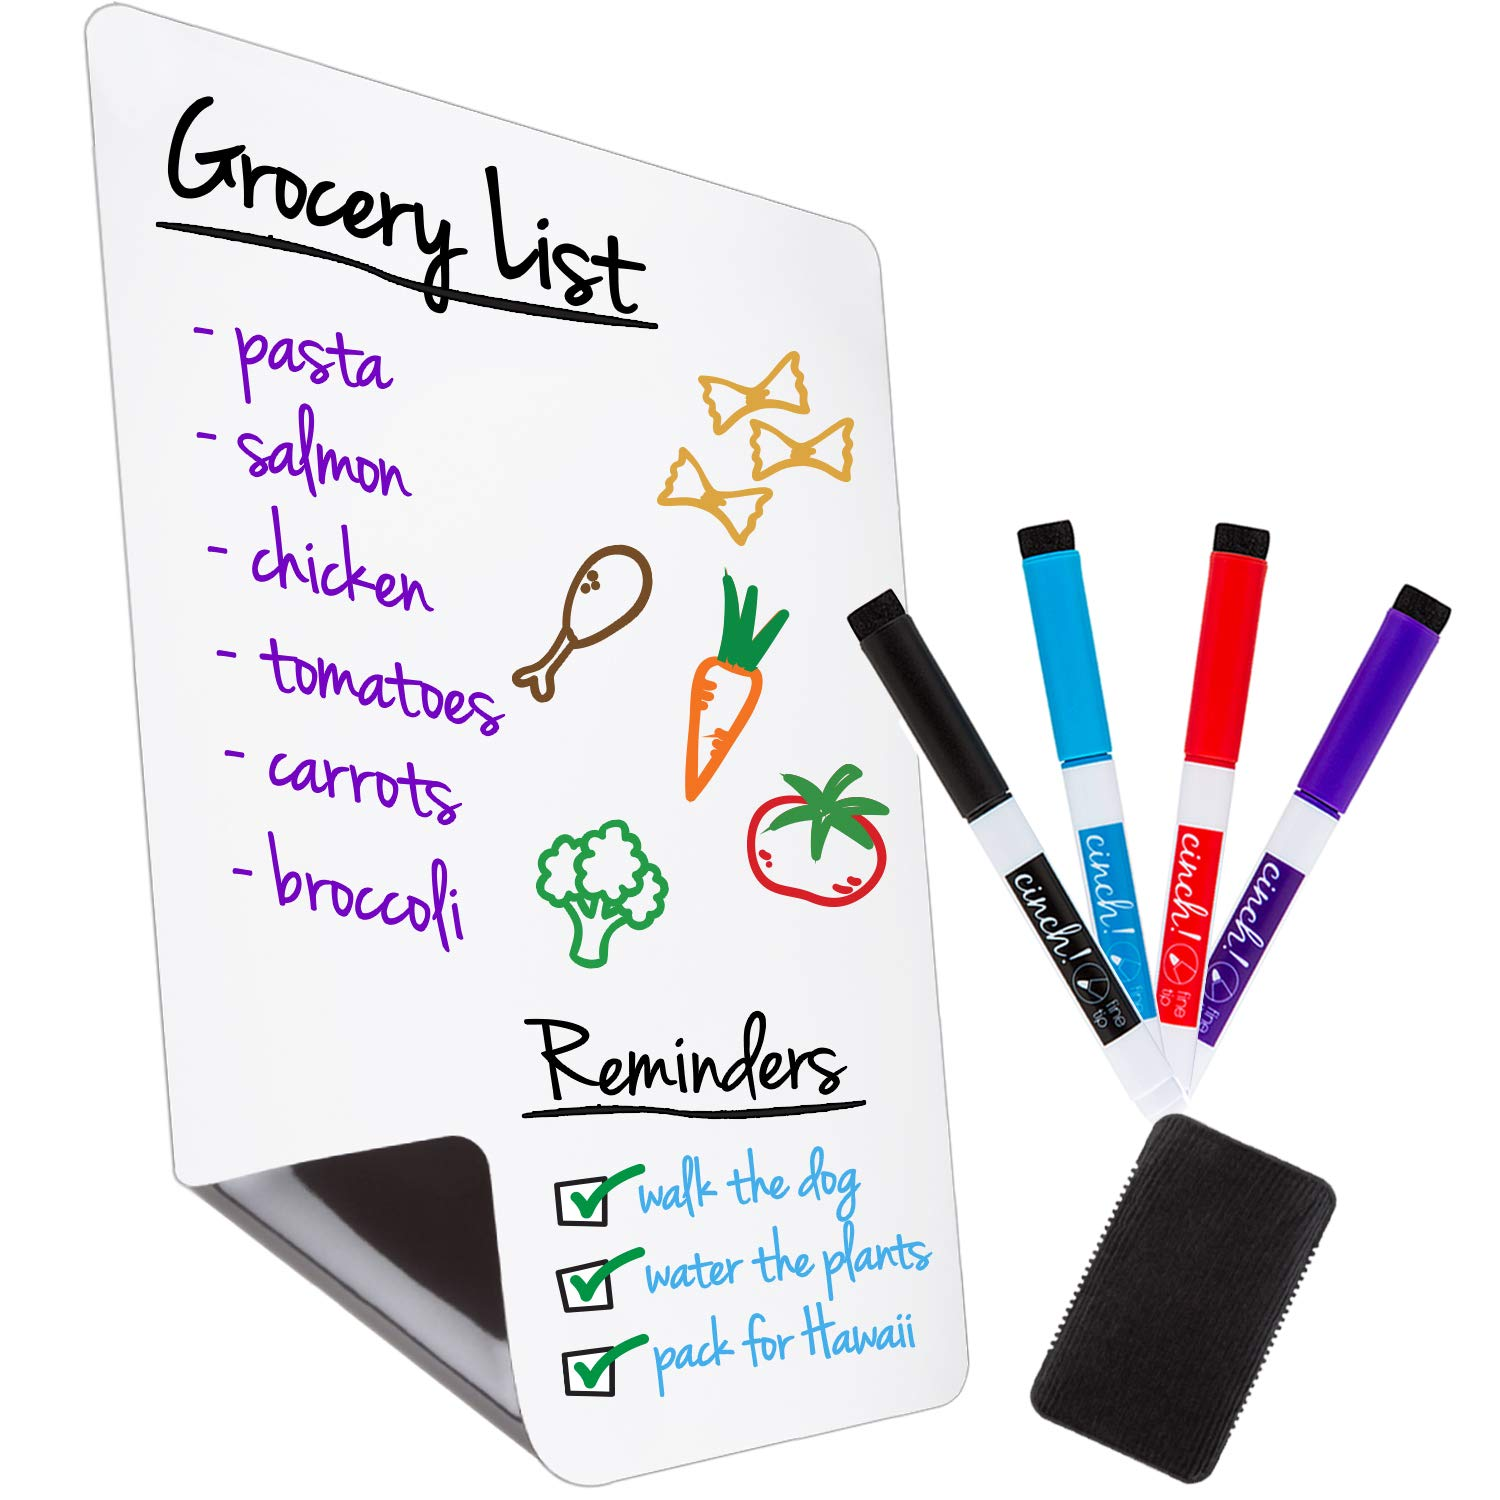 "Magnetic Dry Erase Whiteboard Sheet for Kitchen Fridge: with Stain Resistant Technology - 12x8"" - Includes 4 Markers and Big Eraser with Magnets - Refrigerator Grocery List White Board Organizer"